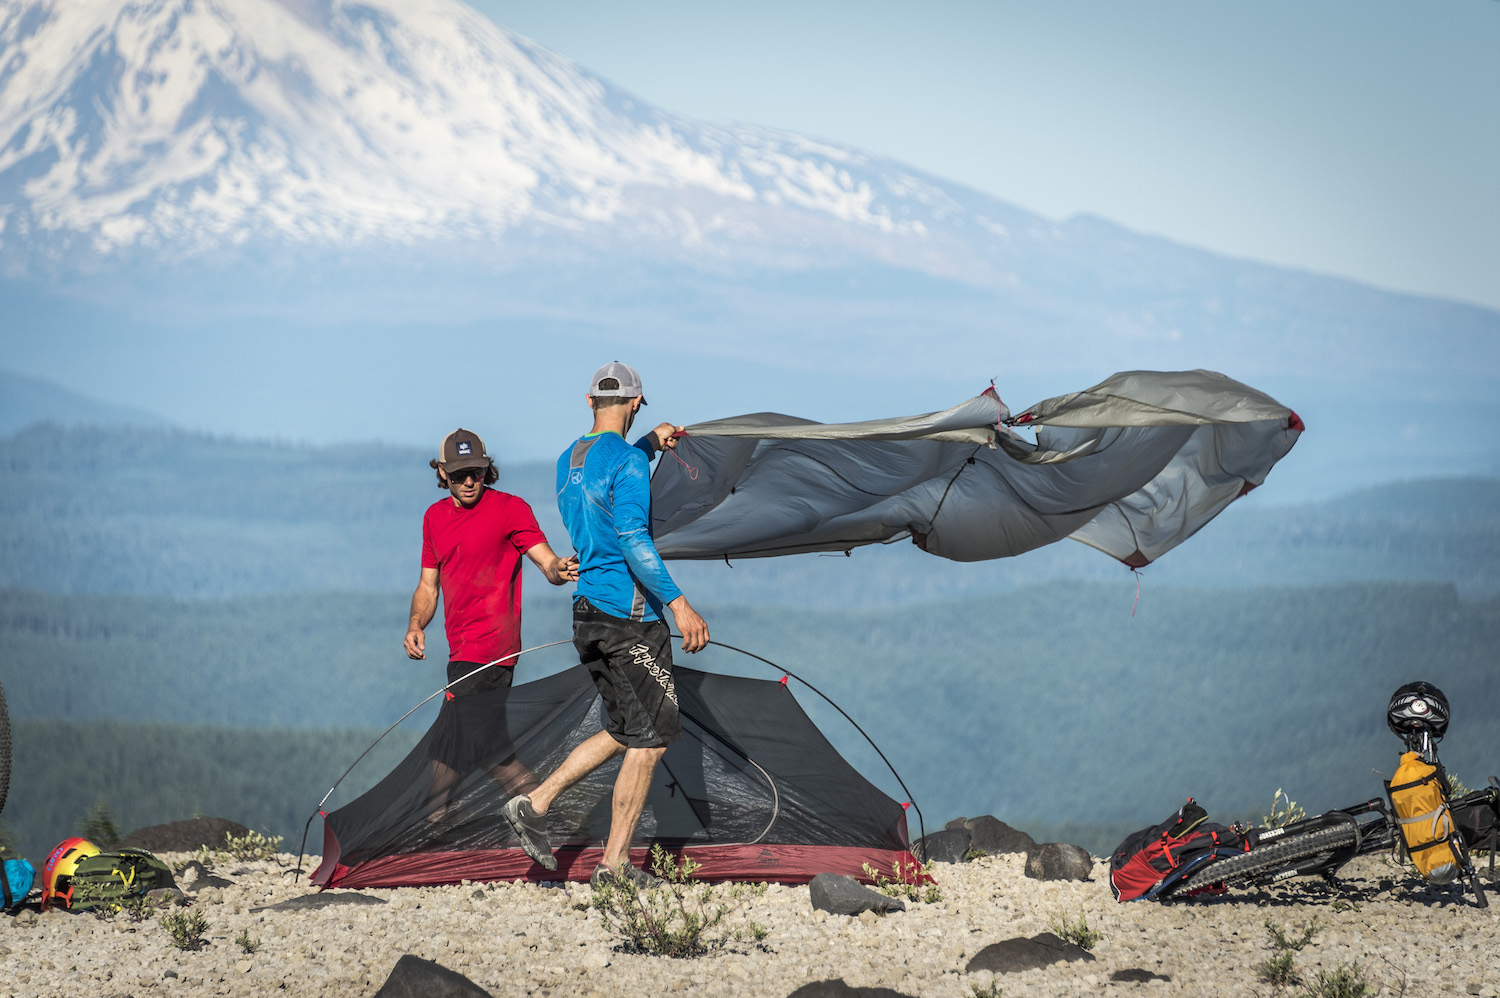 Simplicity Redesigned Reintroducing the MSR Carbon Reflex™ Tent - The Summit Register & Simplicity Redesigned: Reintroducing the MSR Carbon Reflex™ Tent ...